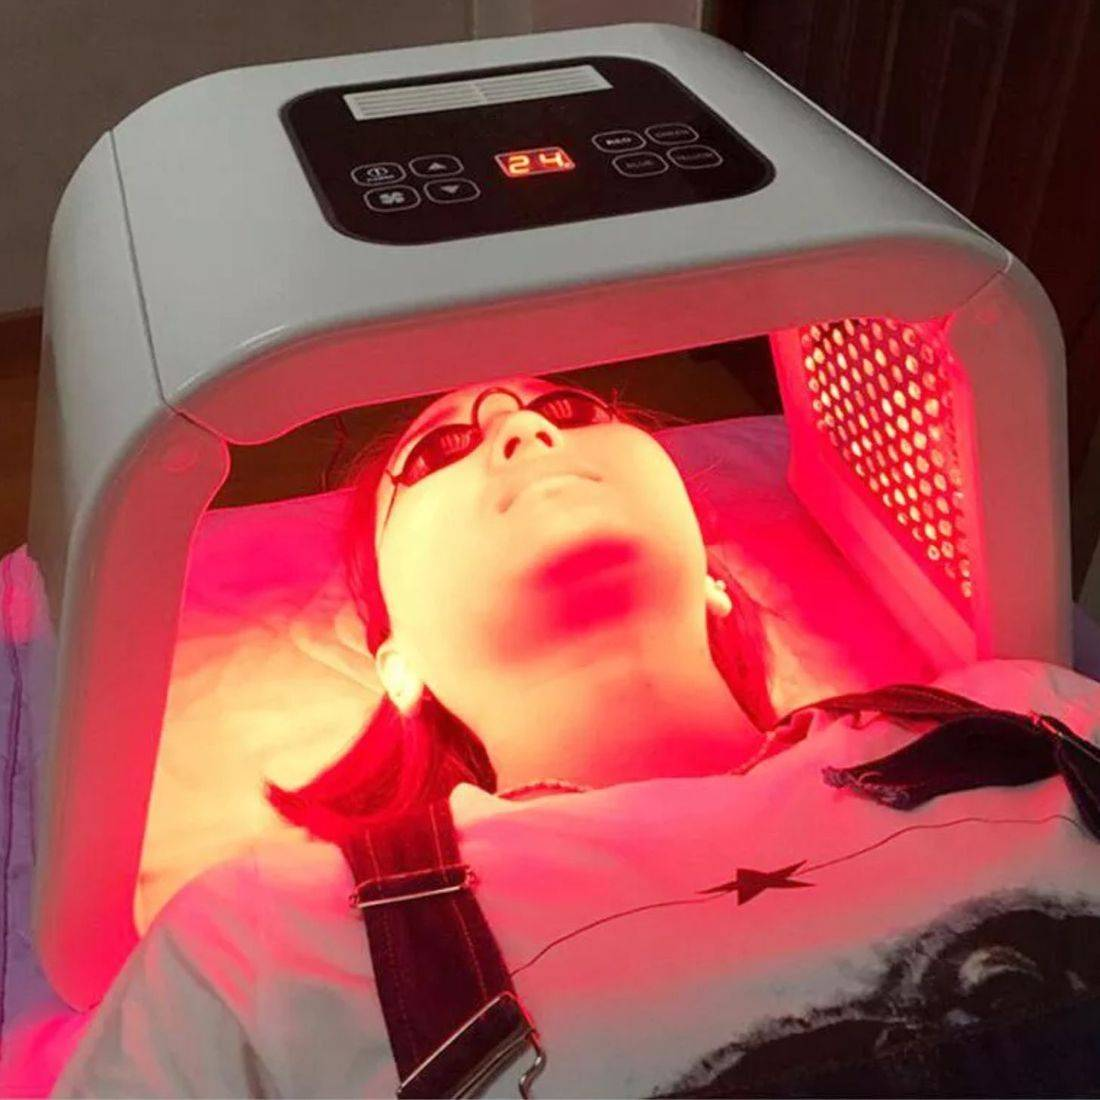 LED face mask anti ageing acne skin treatment